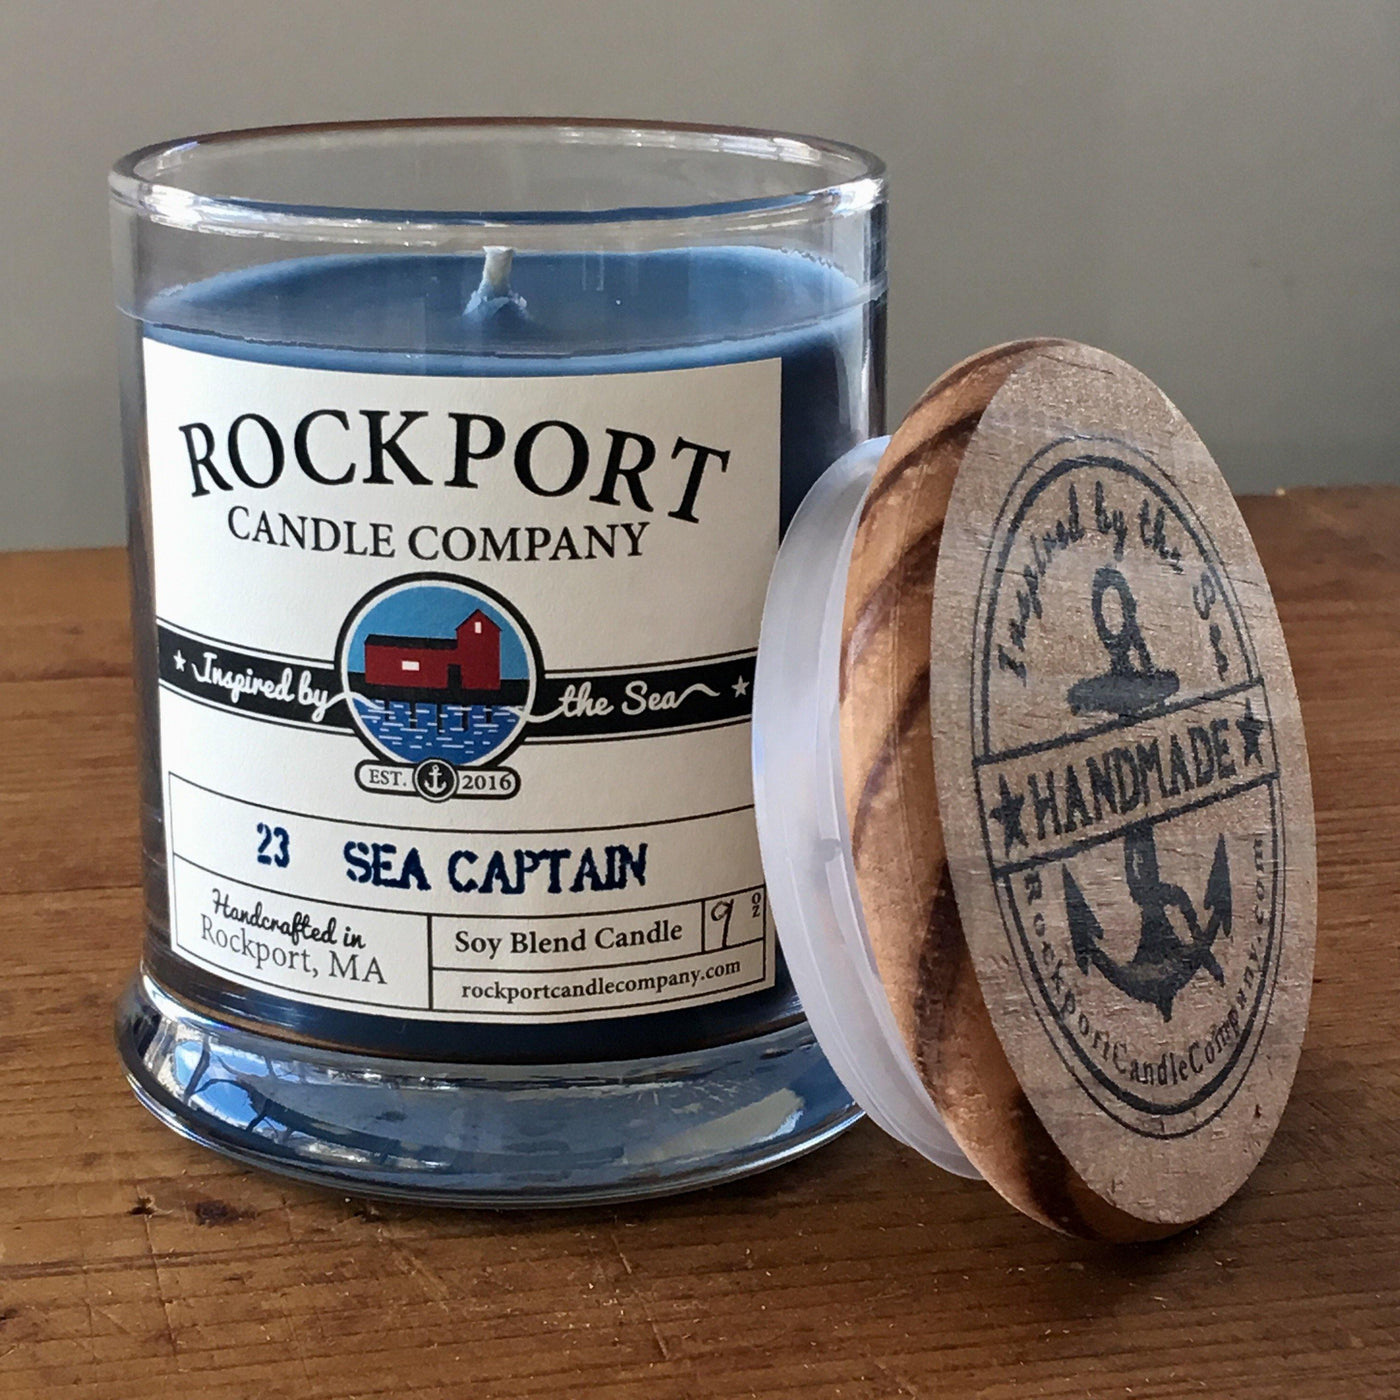 23 Sea Captain Candle Rockport Candle Company